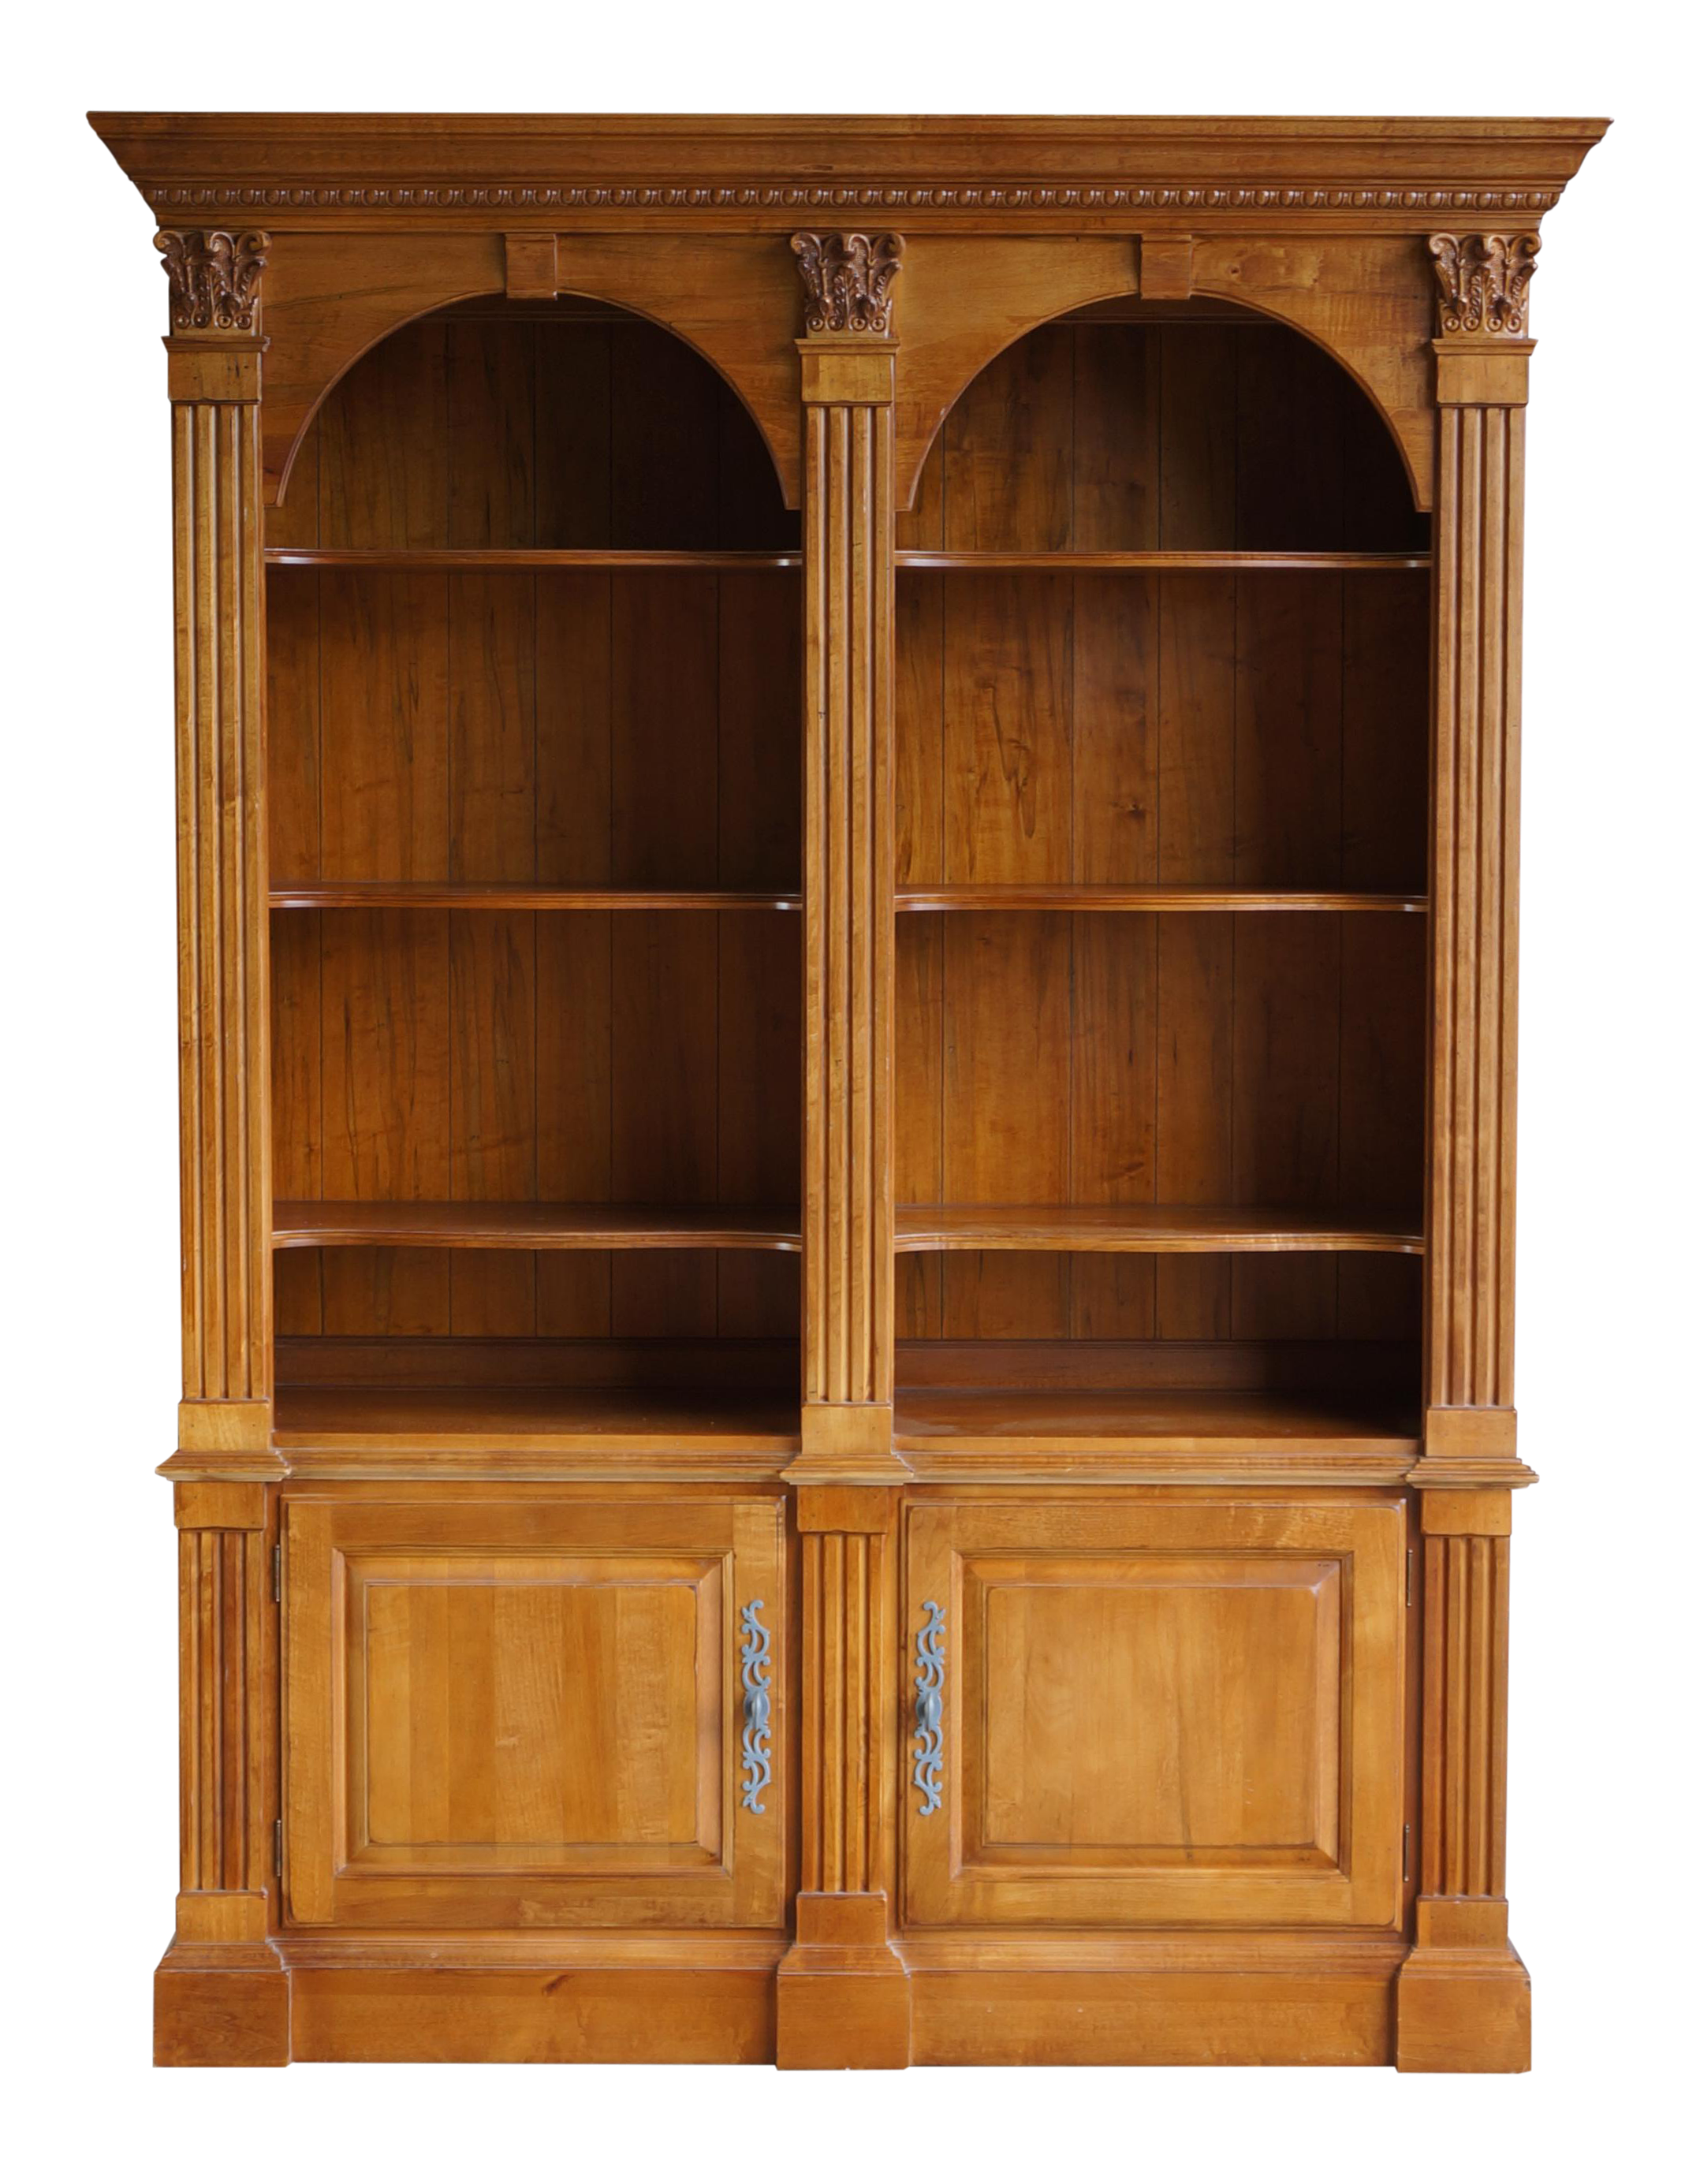 ethan allen legacy double arch library bookcase cabinet chairish